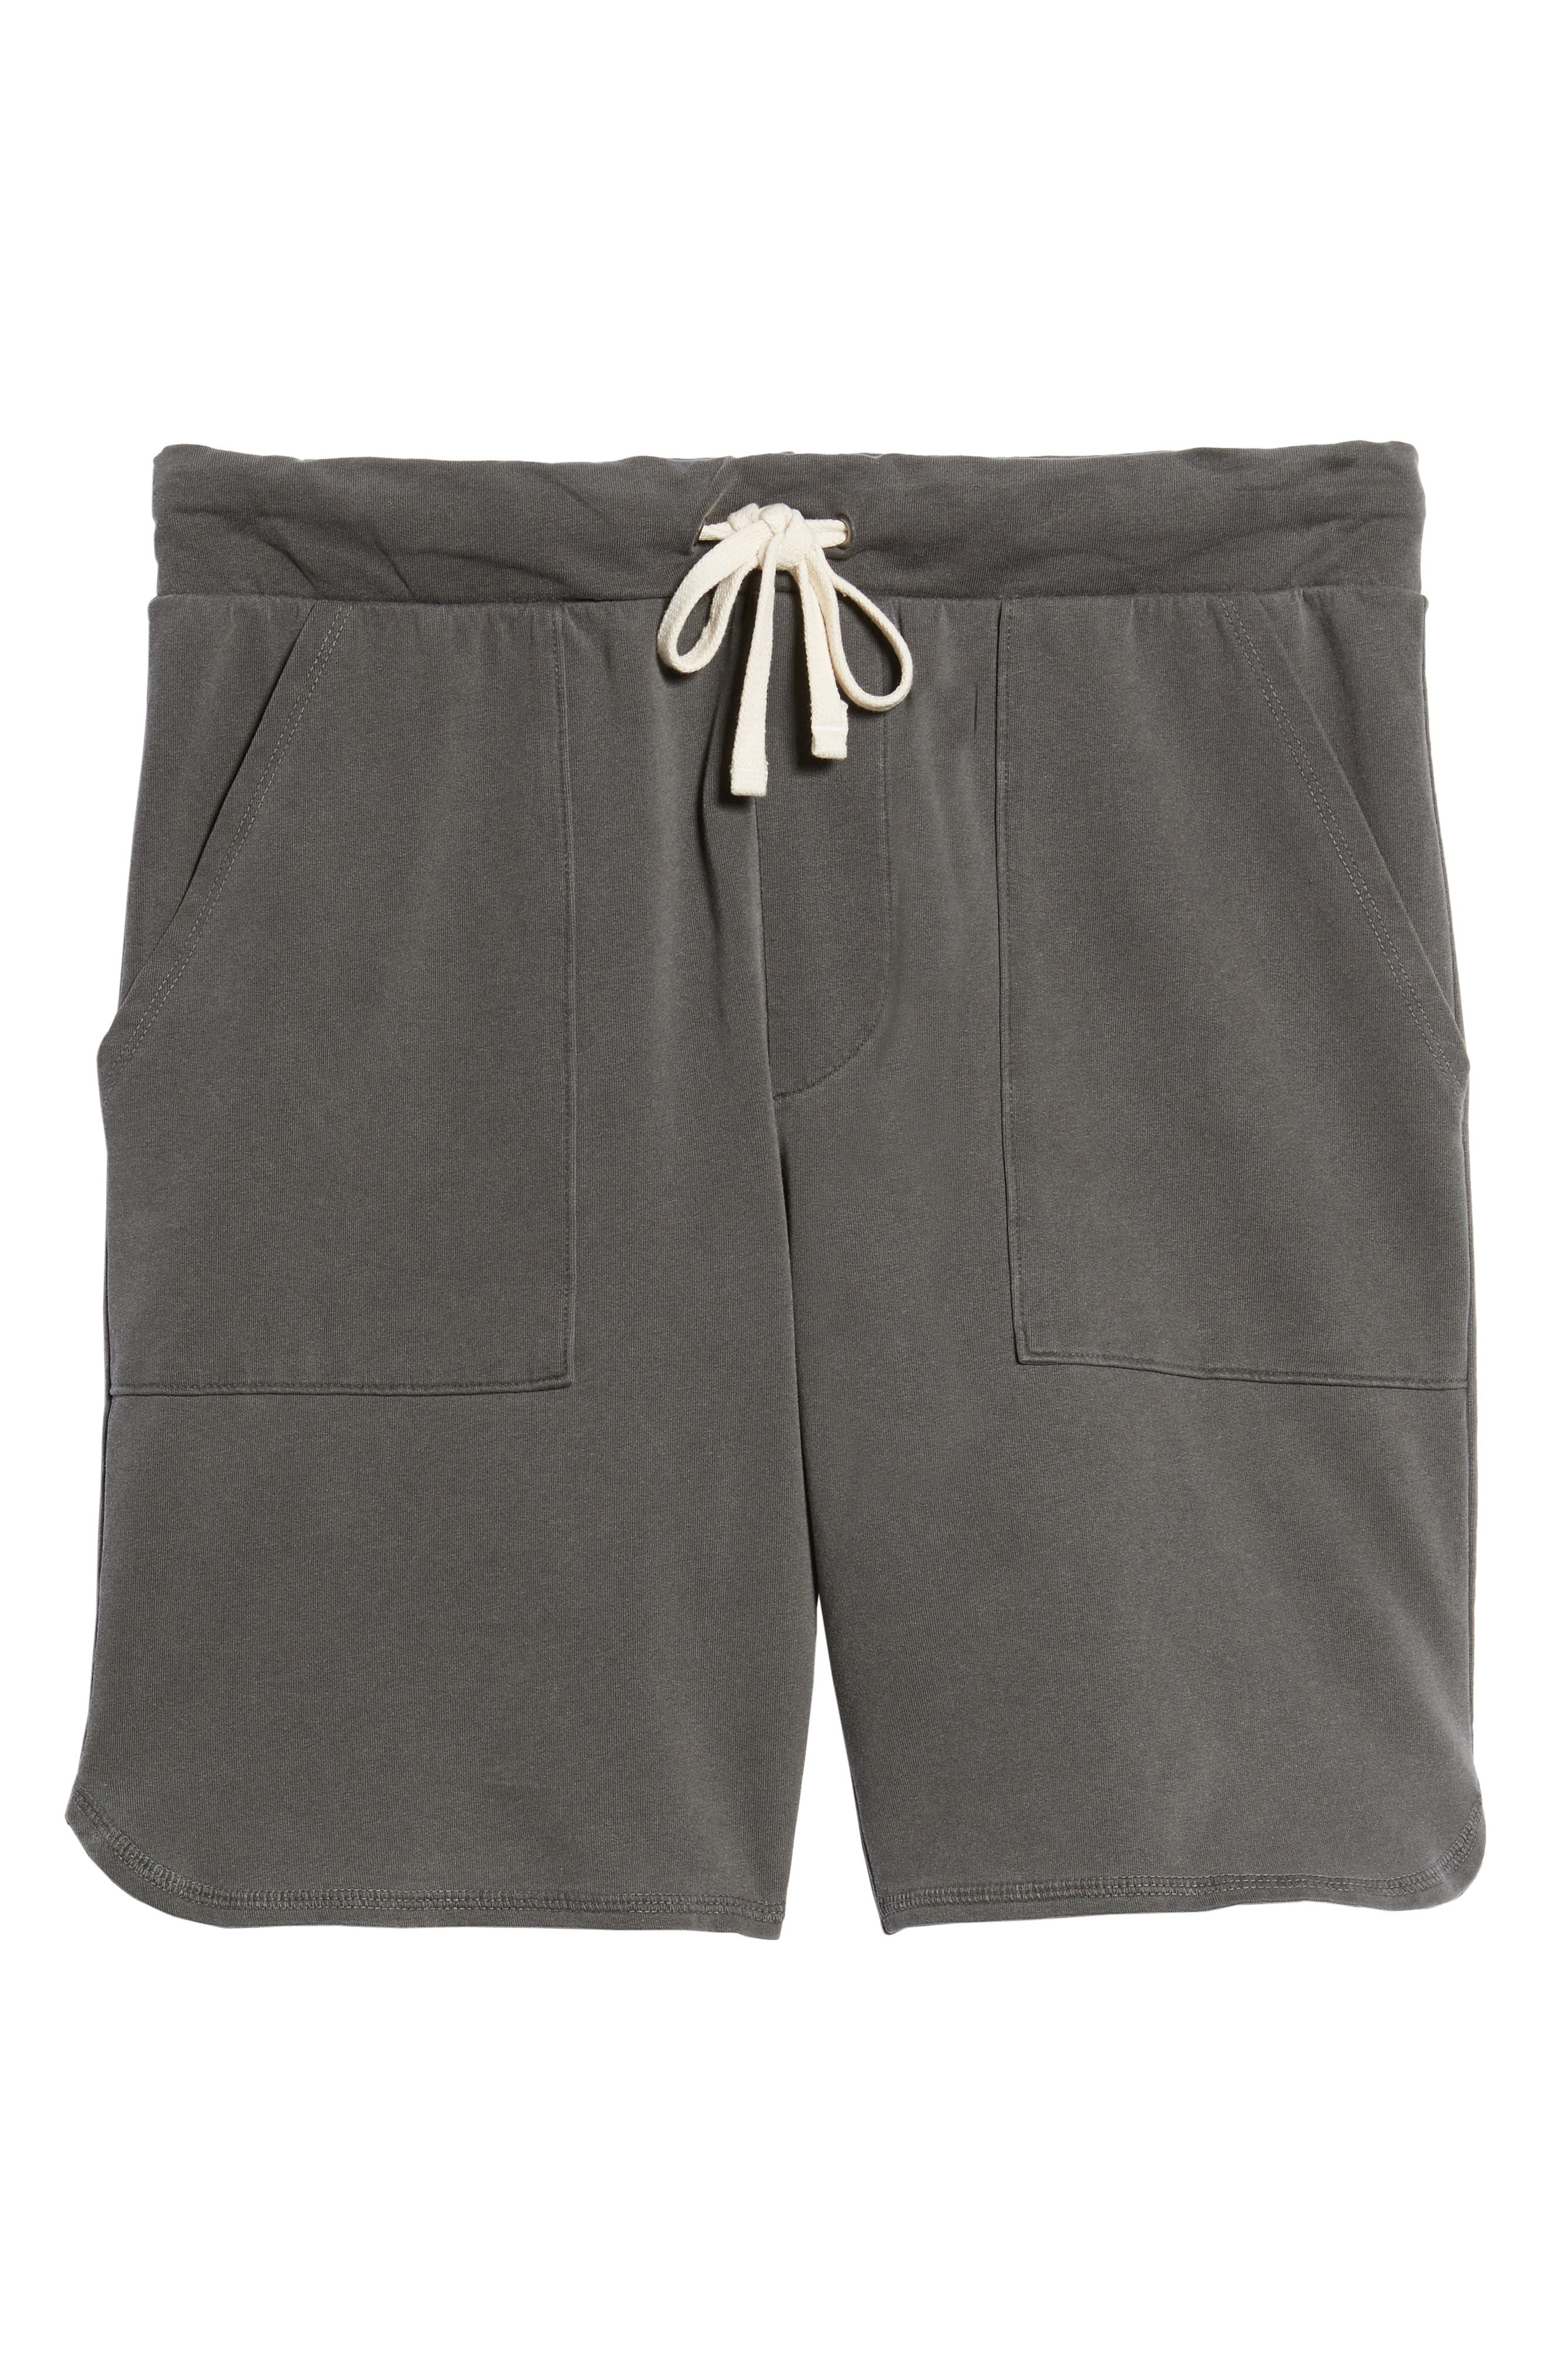 Terrycloth Scallop Shorts,                             Alternate thumbnail 6, color,                             009